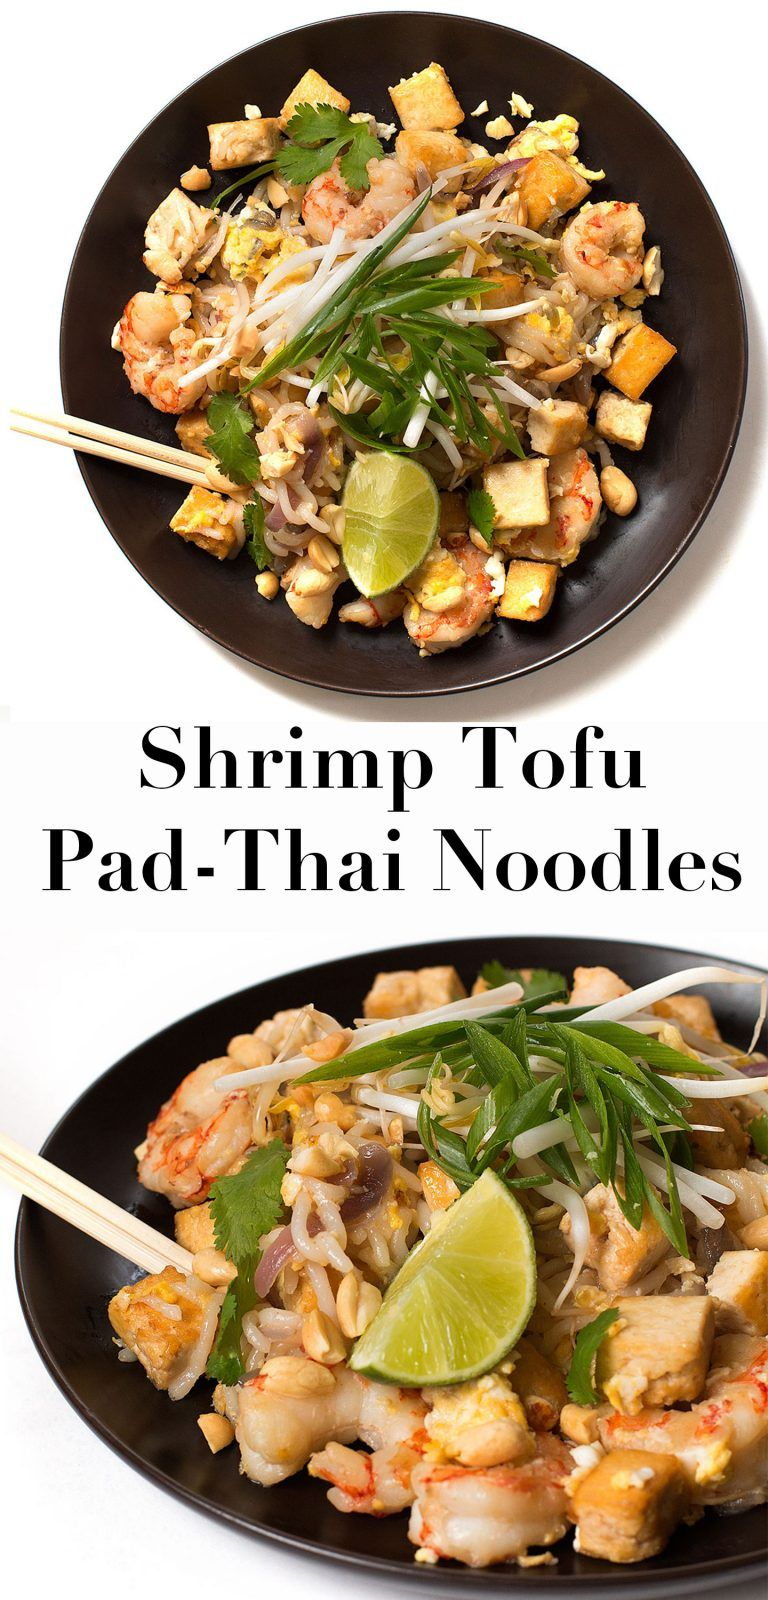 Shrimp Tofu Pad Thai Noodles -   18 healthy recipes Shrimp tofu ideas